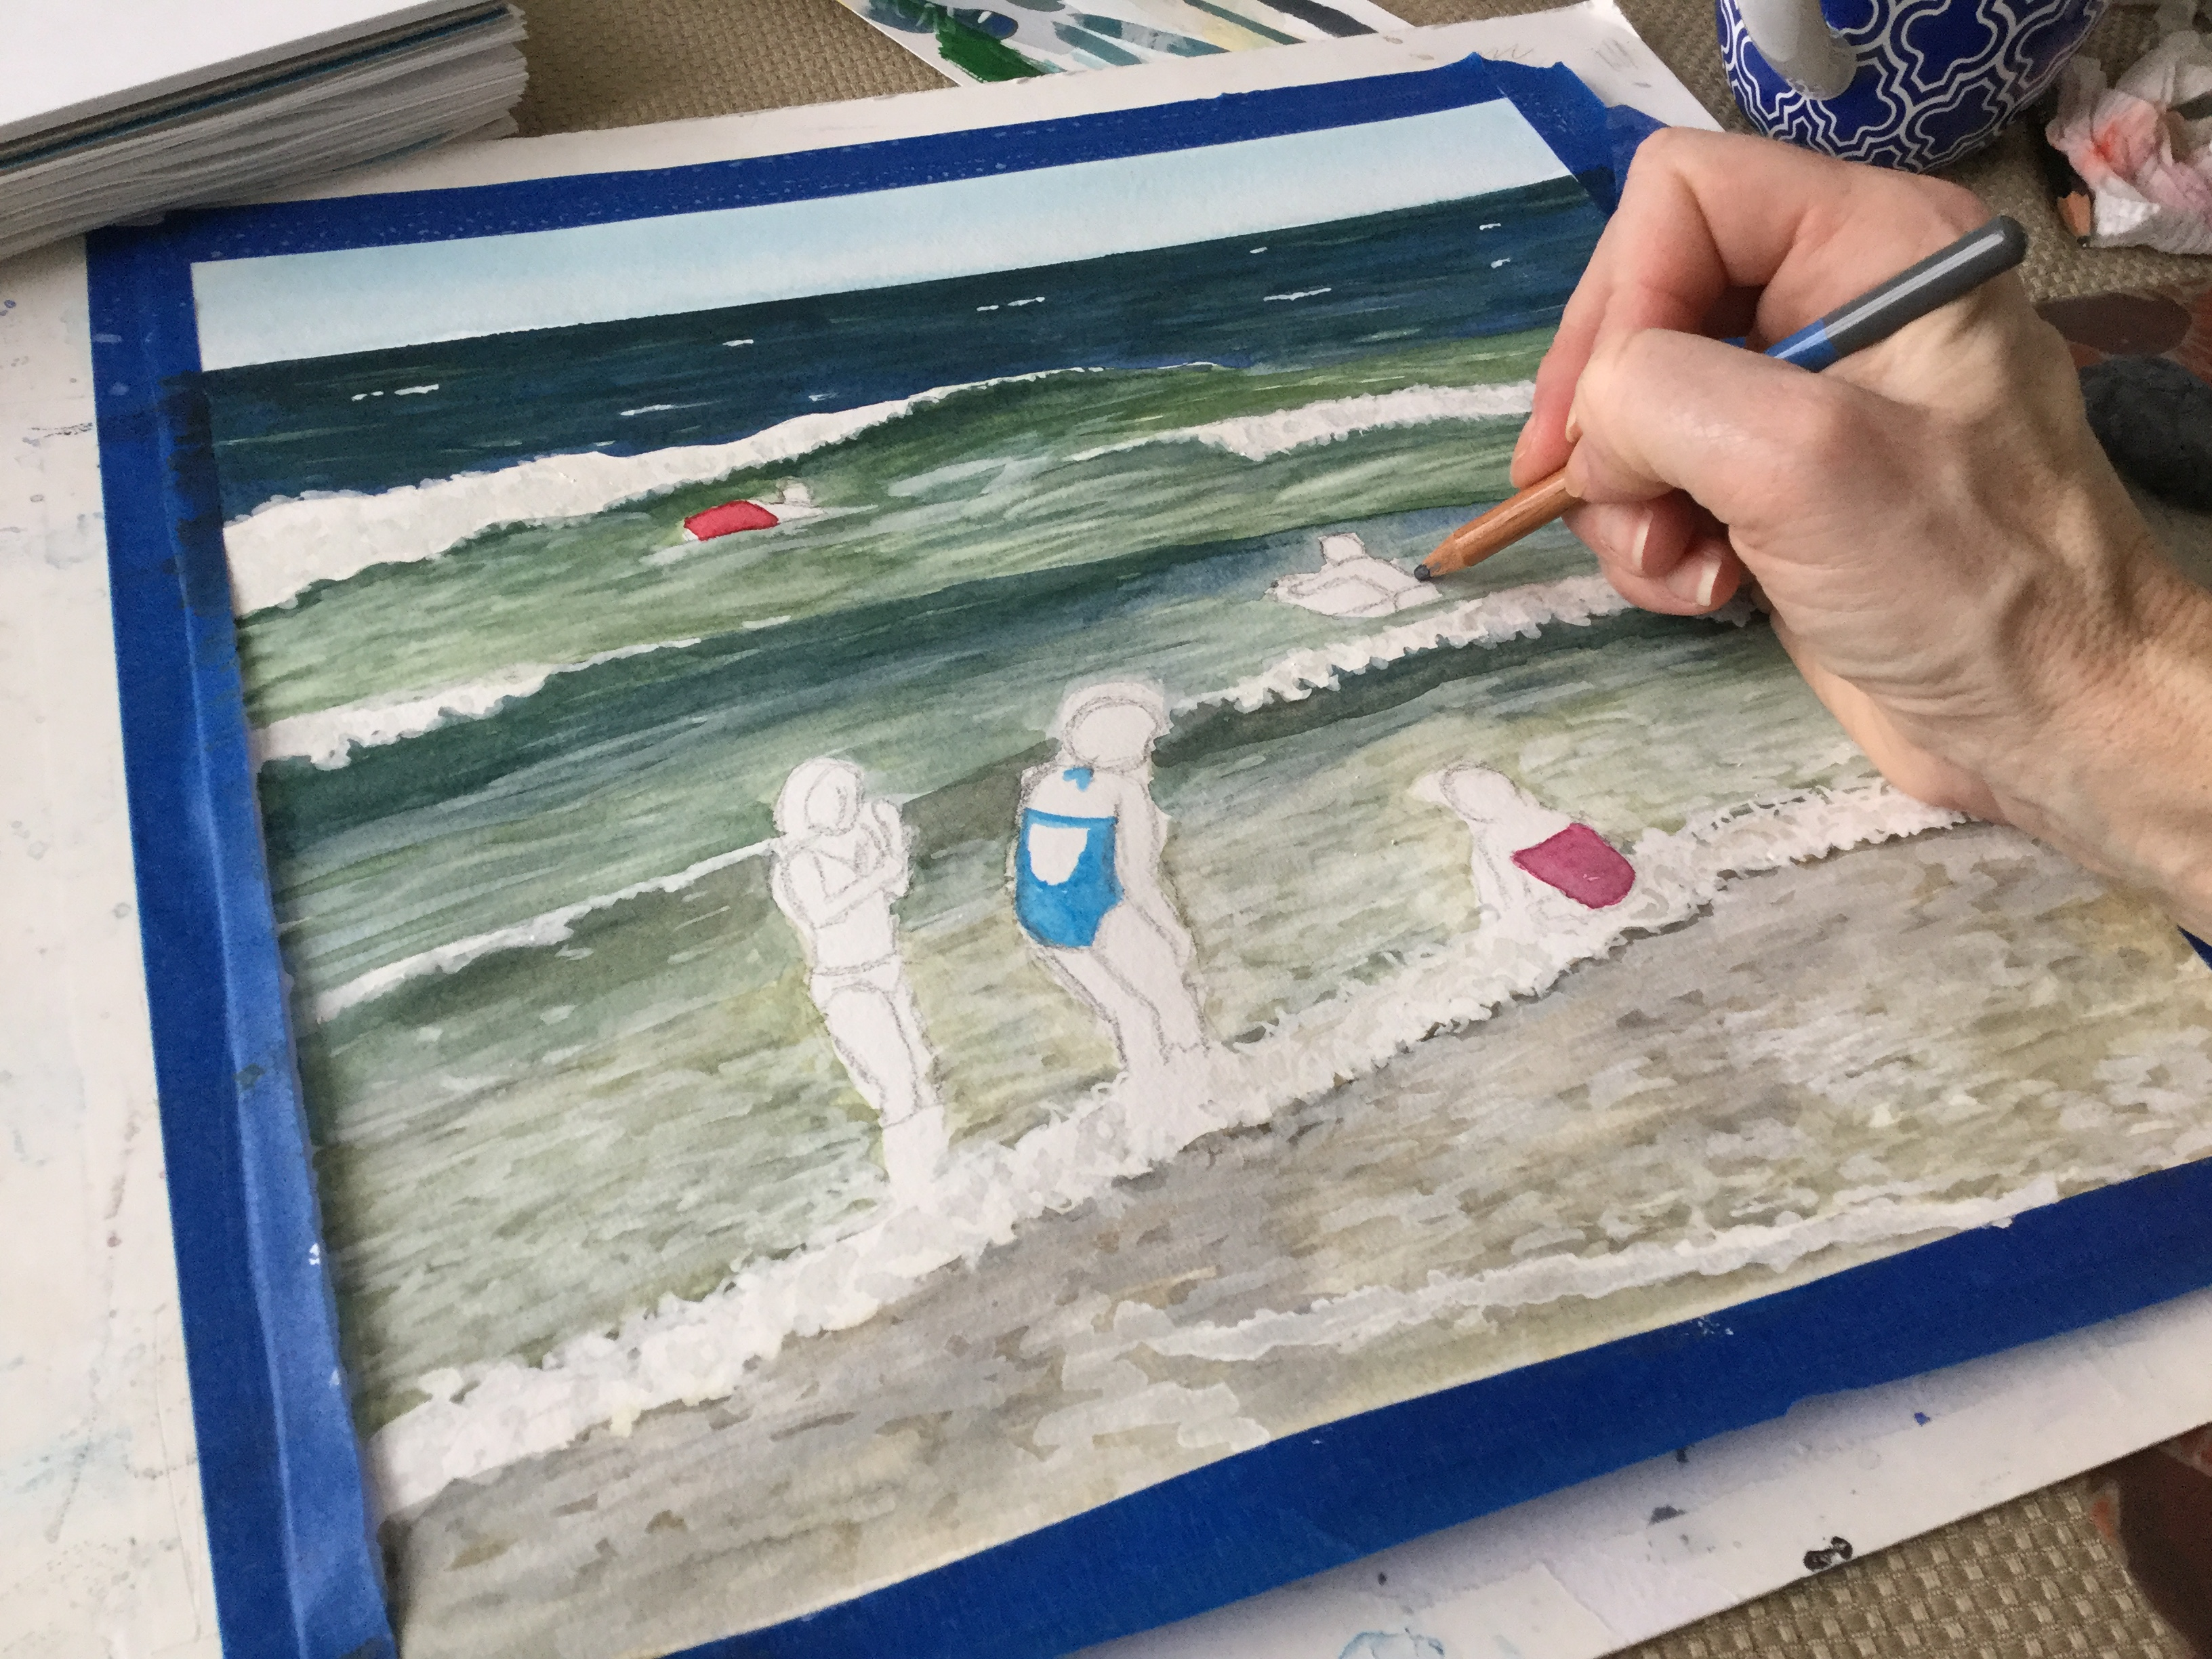 Painting figures on the beach